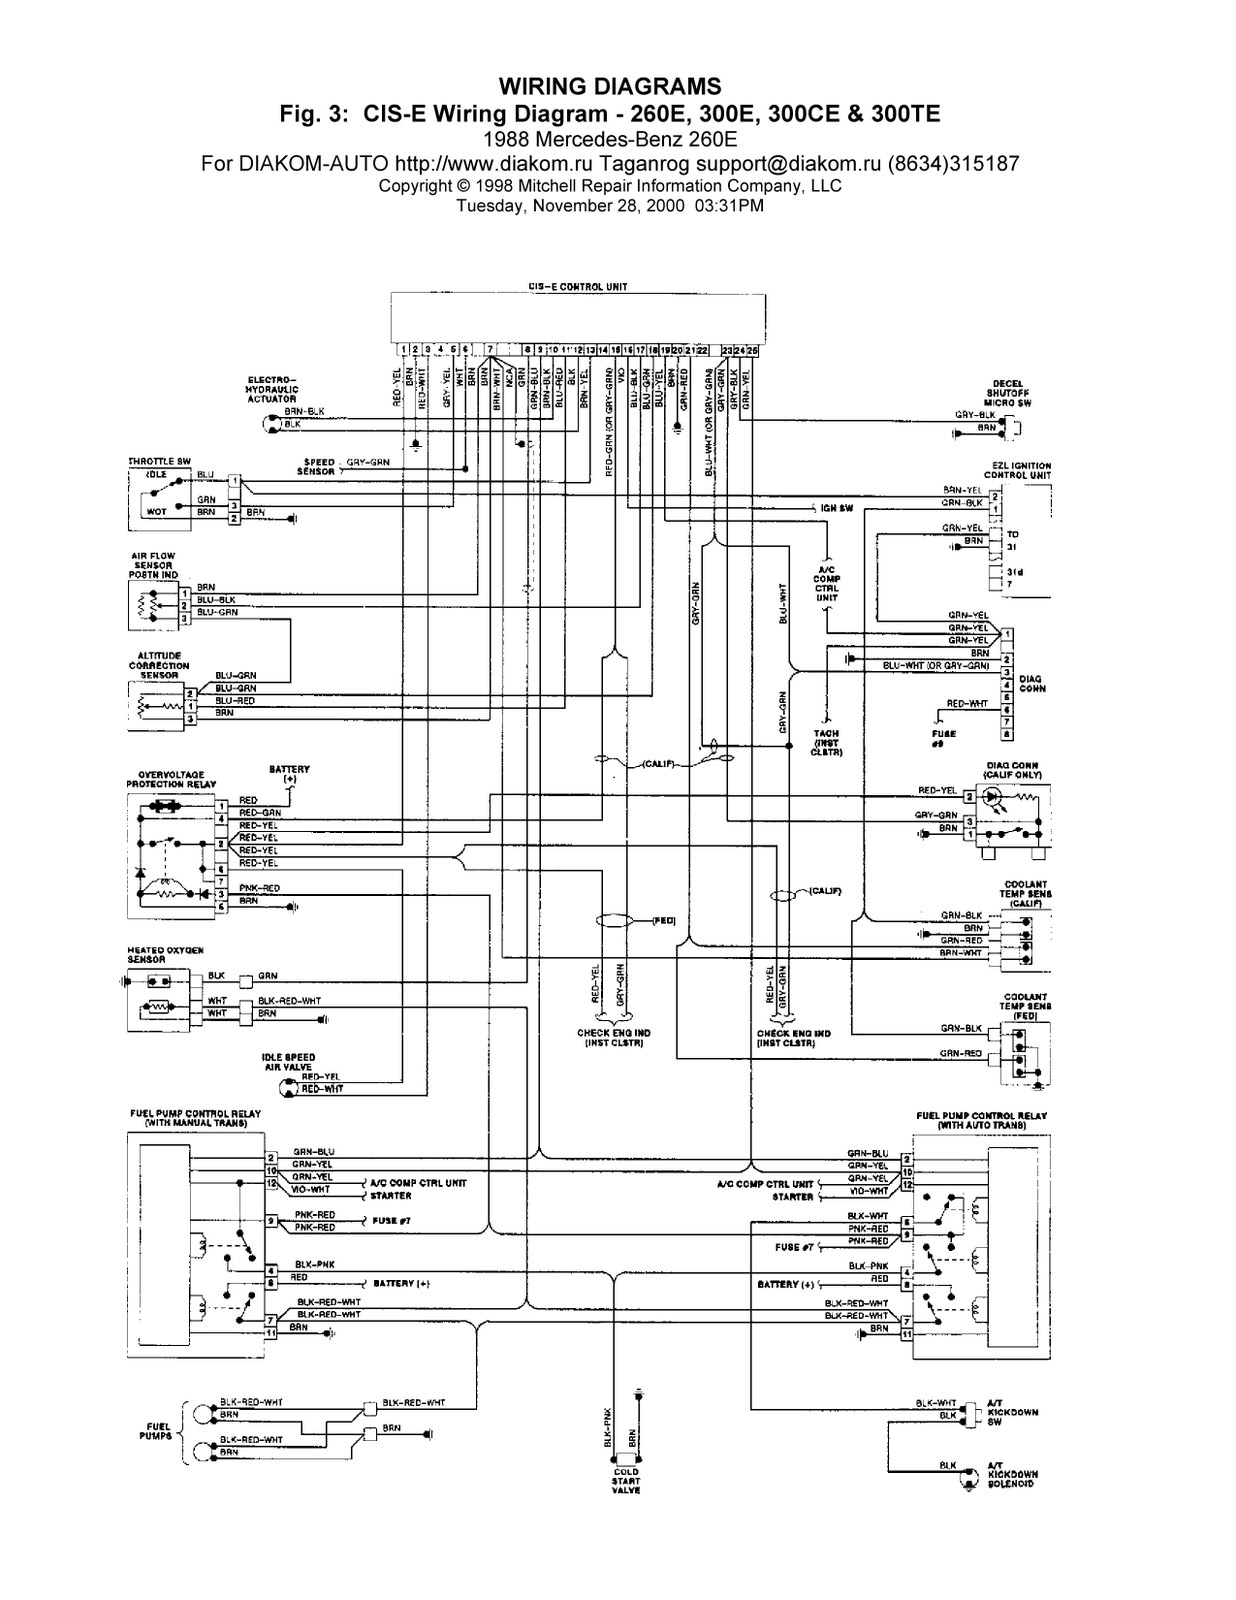 1988    Mercedes      Benz    260E CISE    Wiring       Diagrams      Schematic    Wiring       Diagrams    Solutions